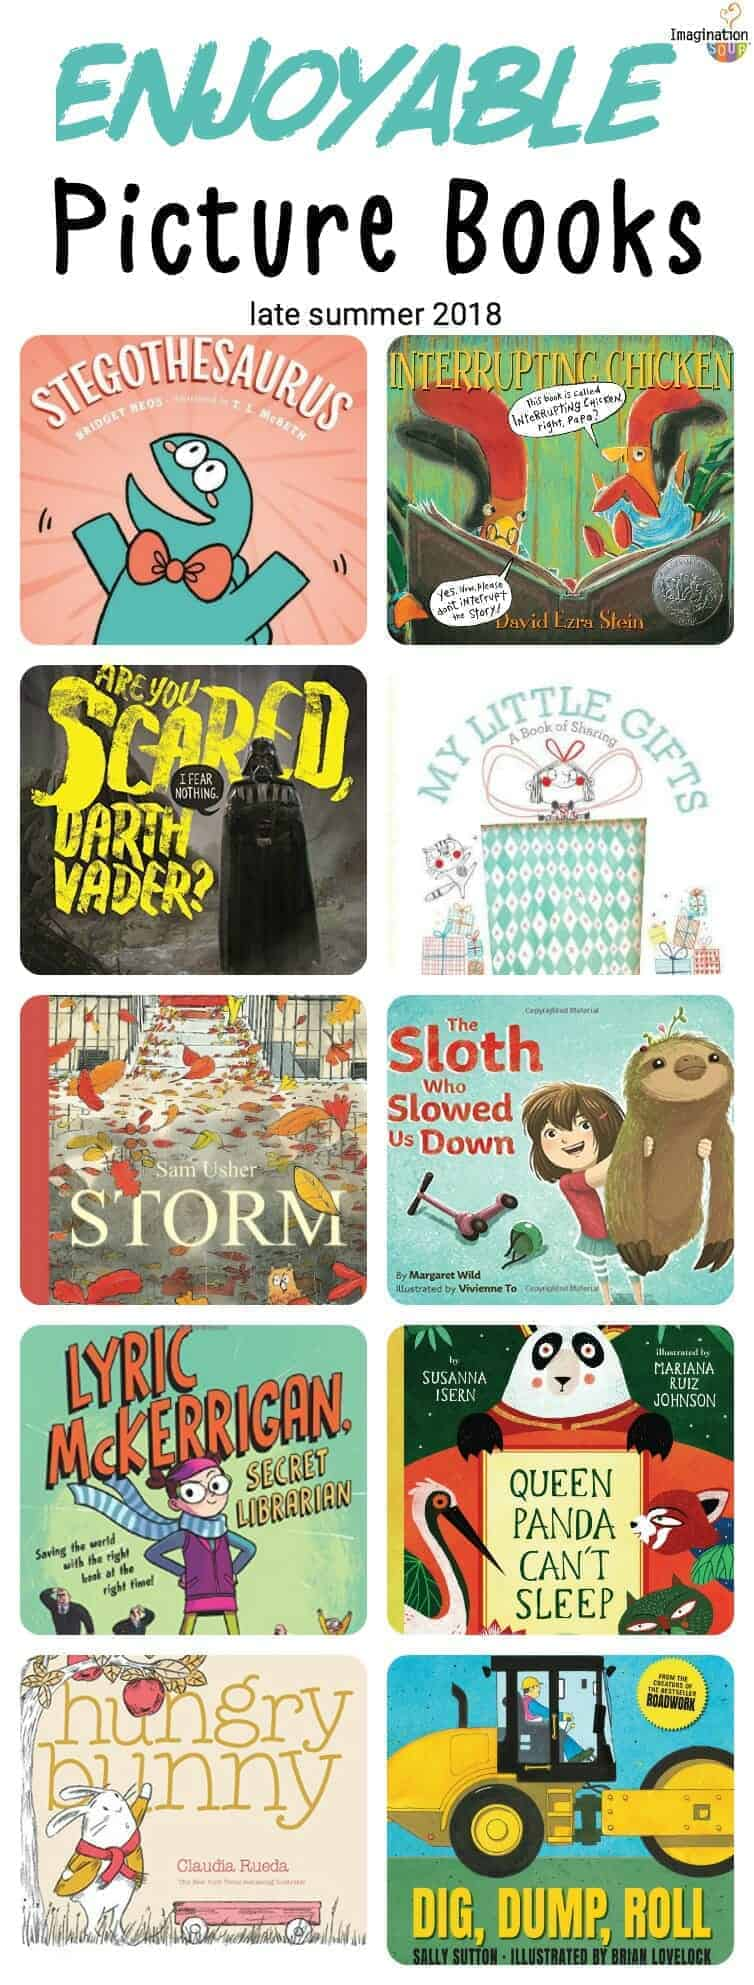 10 enjoyable picture books (late summer 2018)